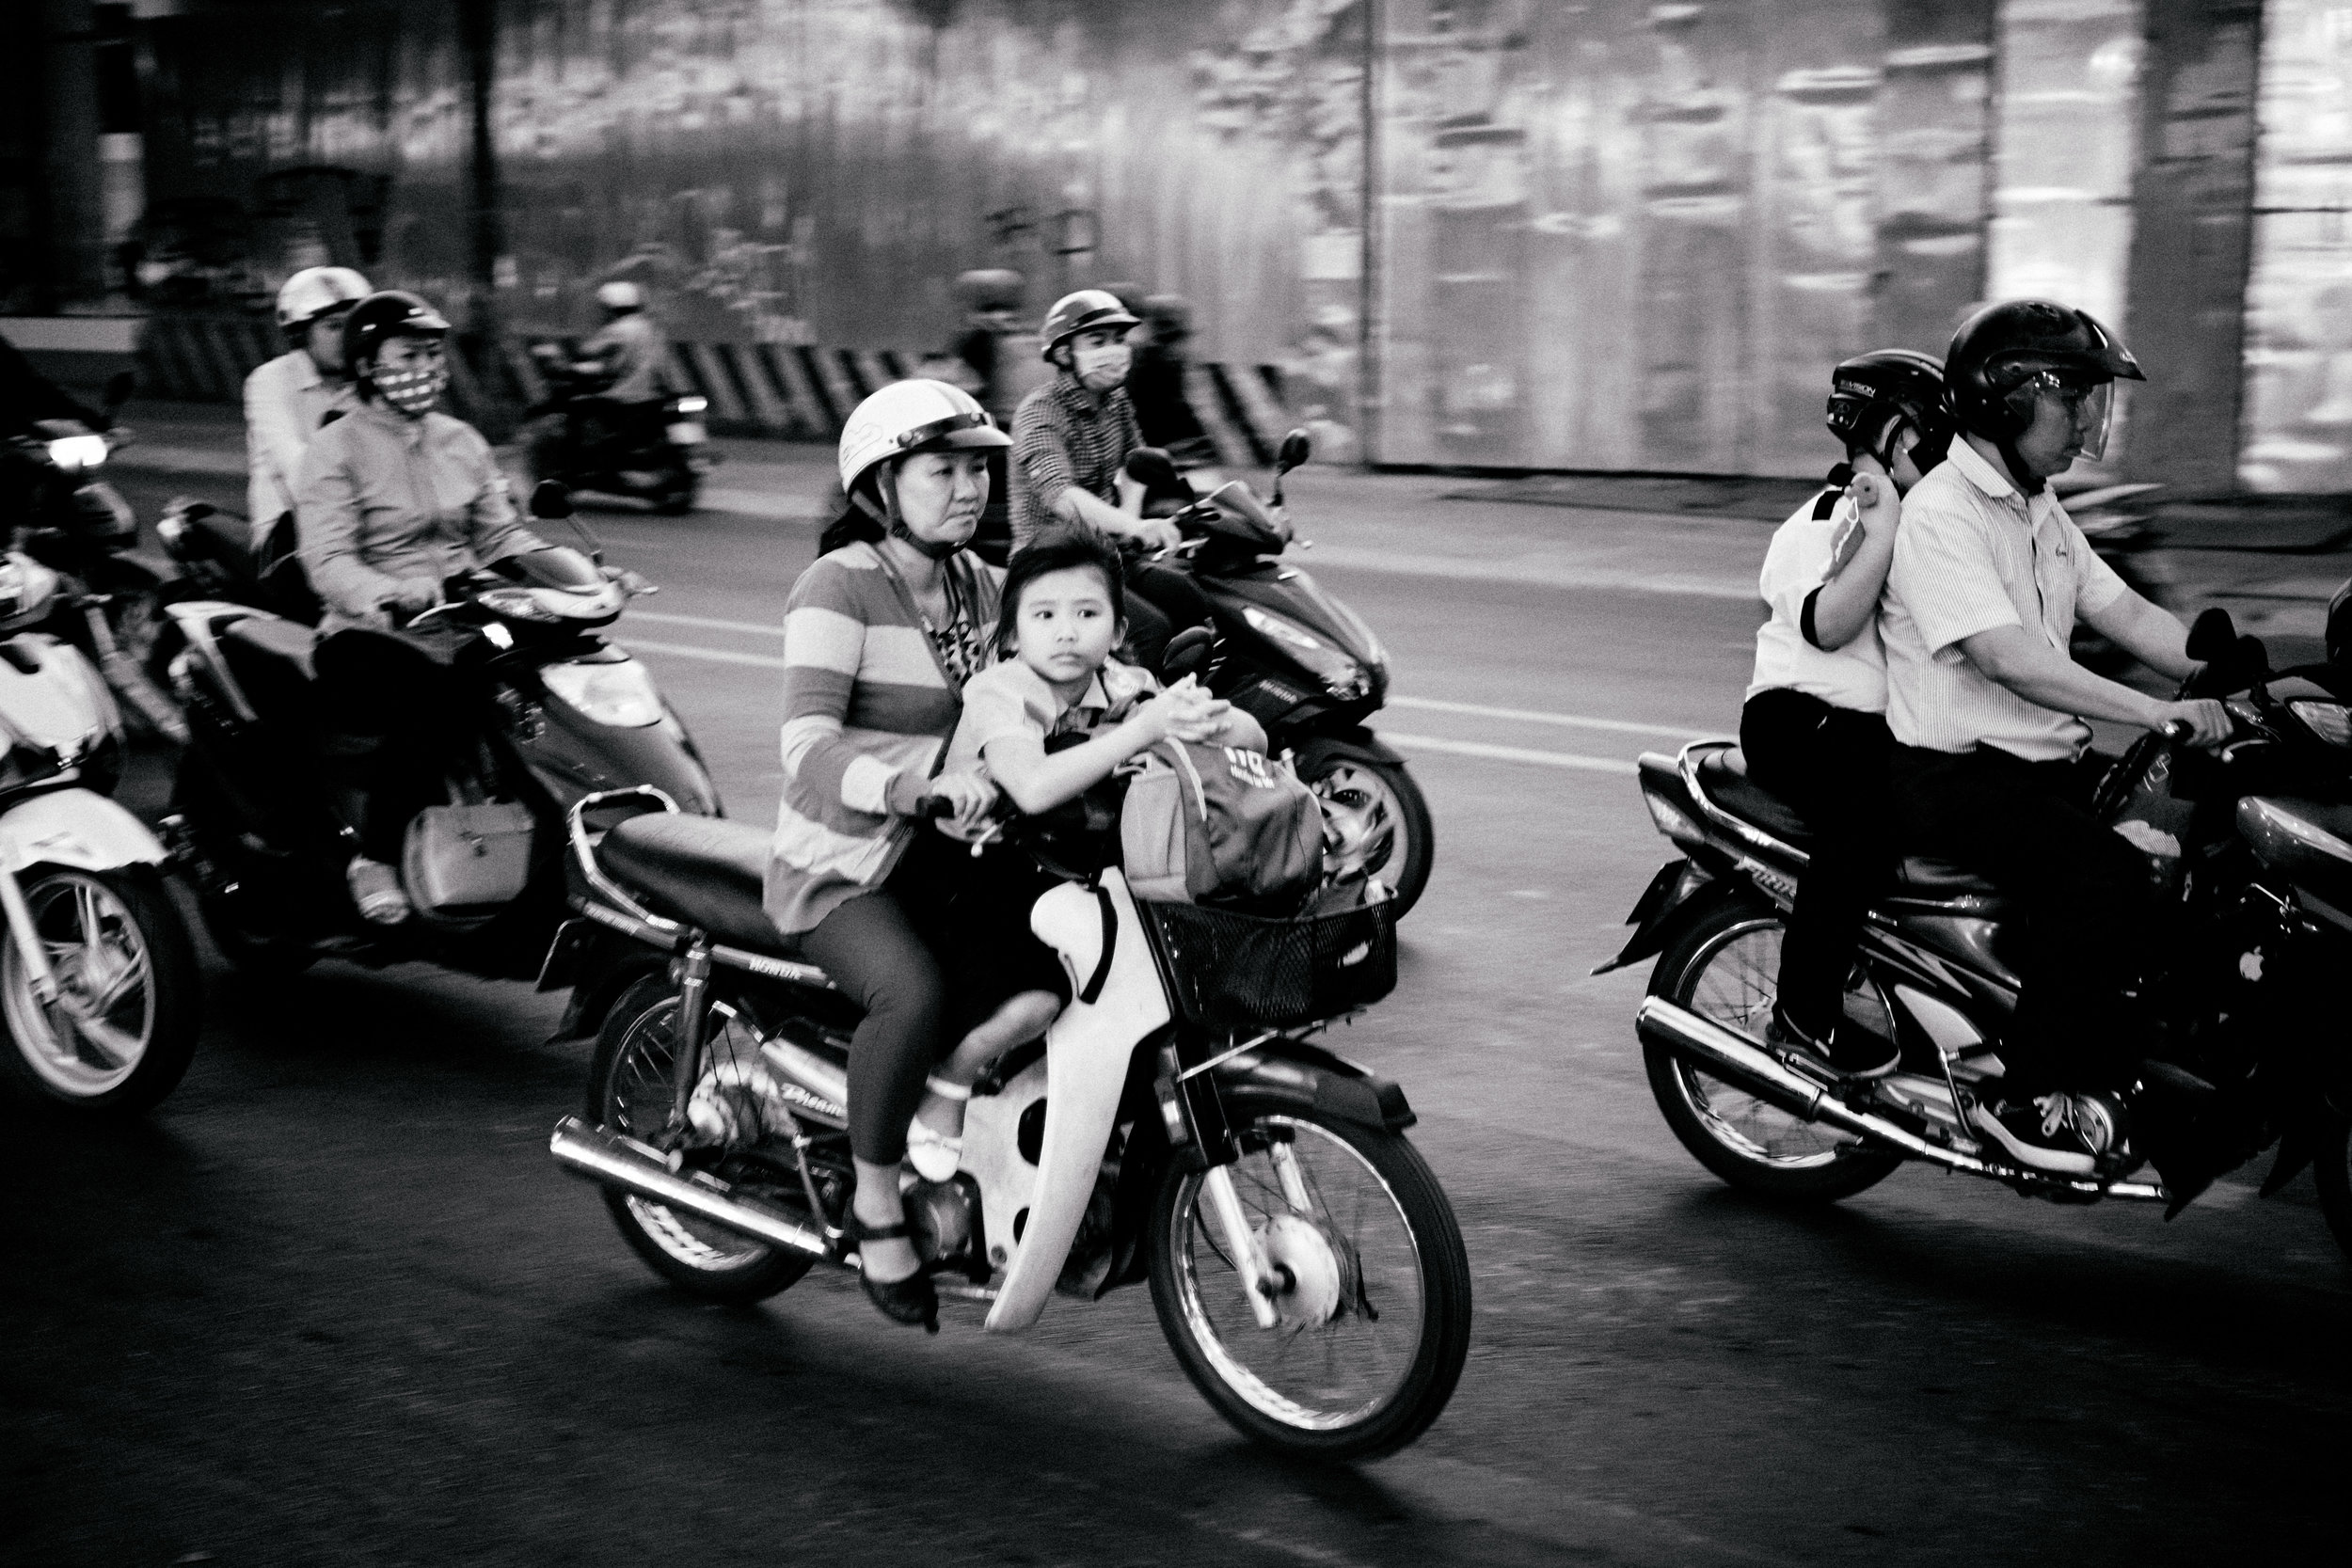 traffic . saigon . january 2018